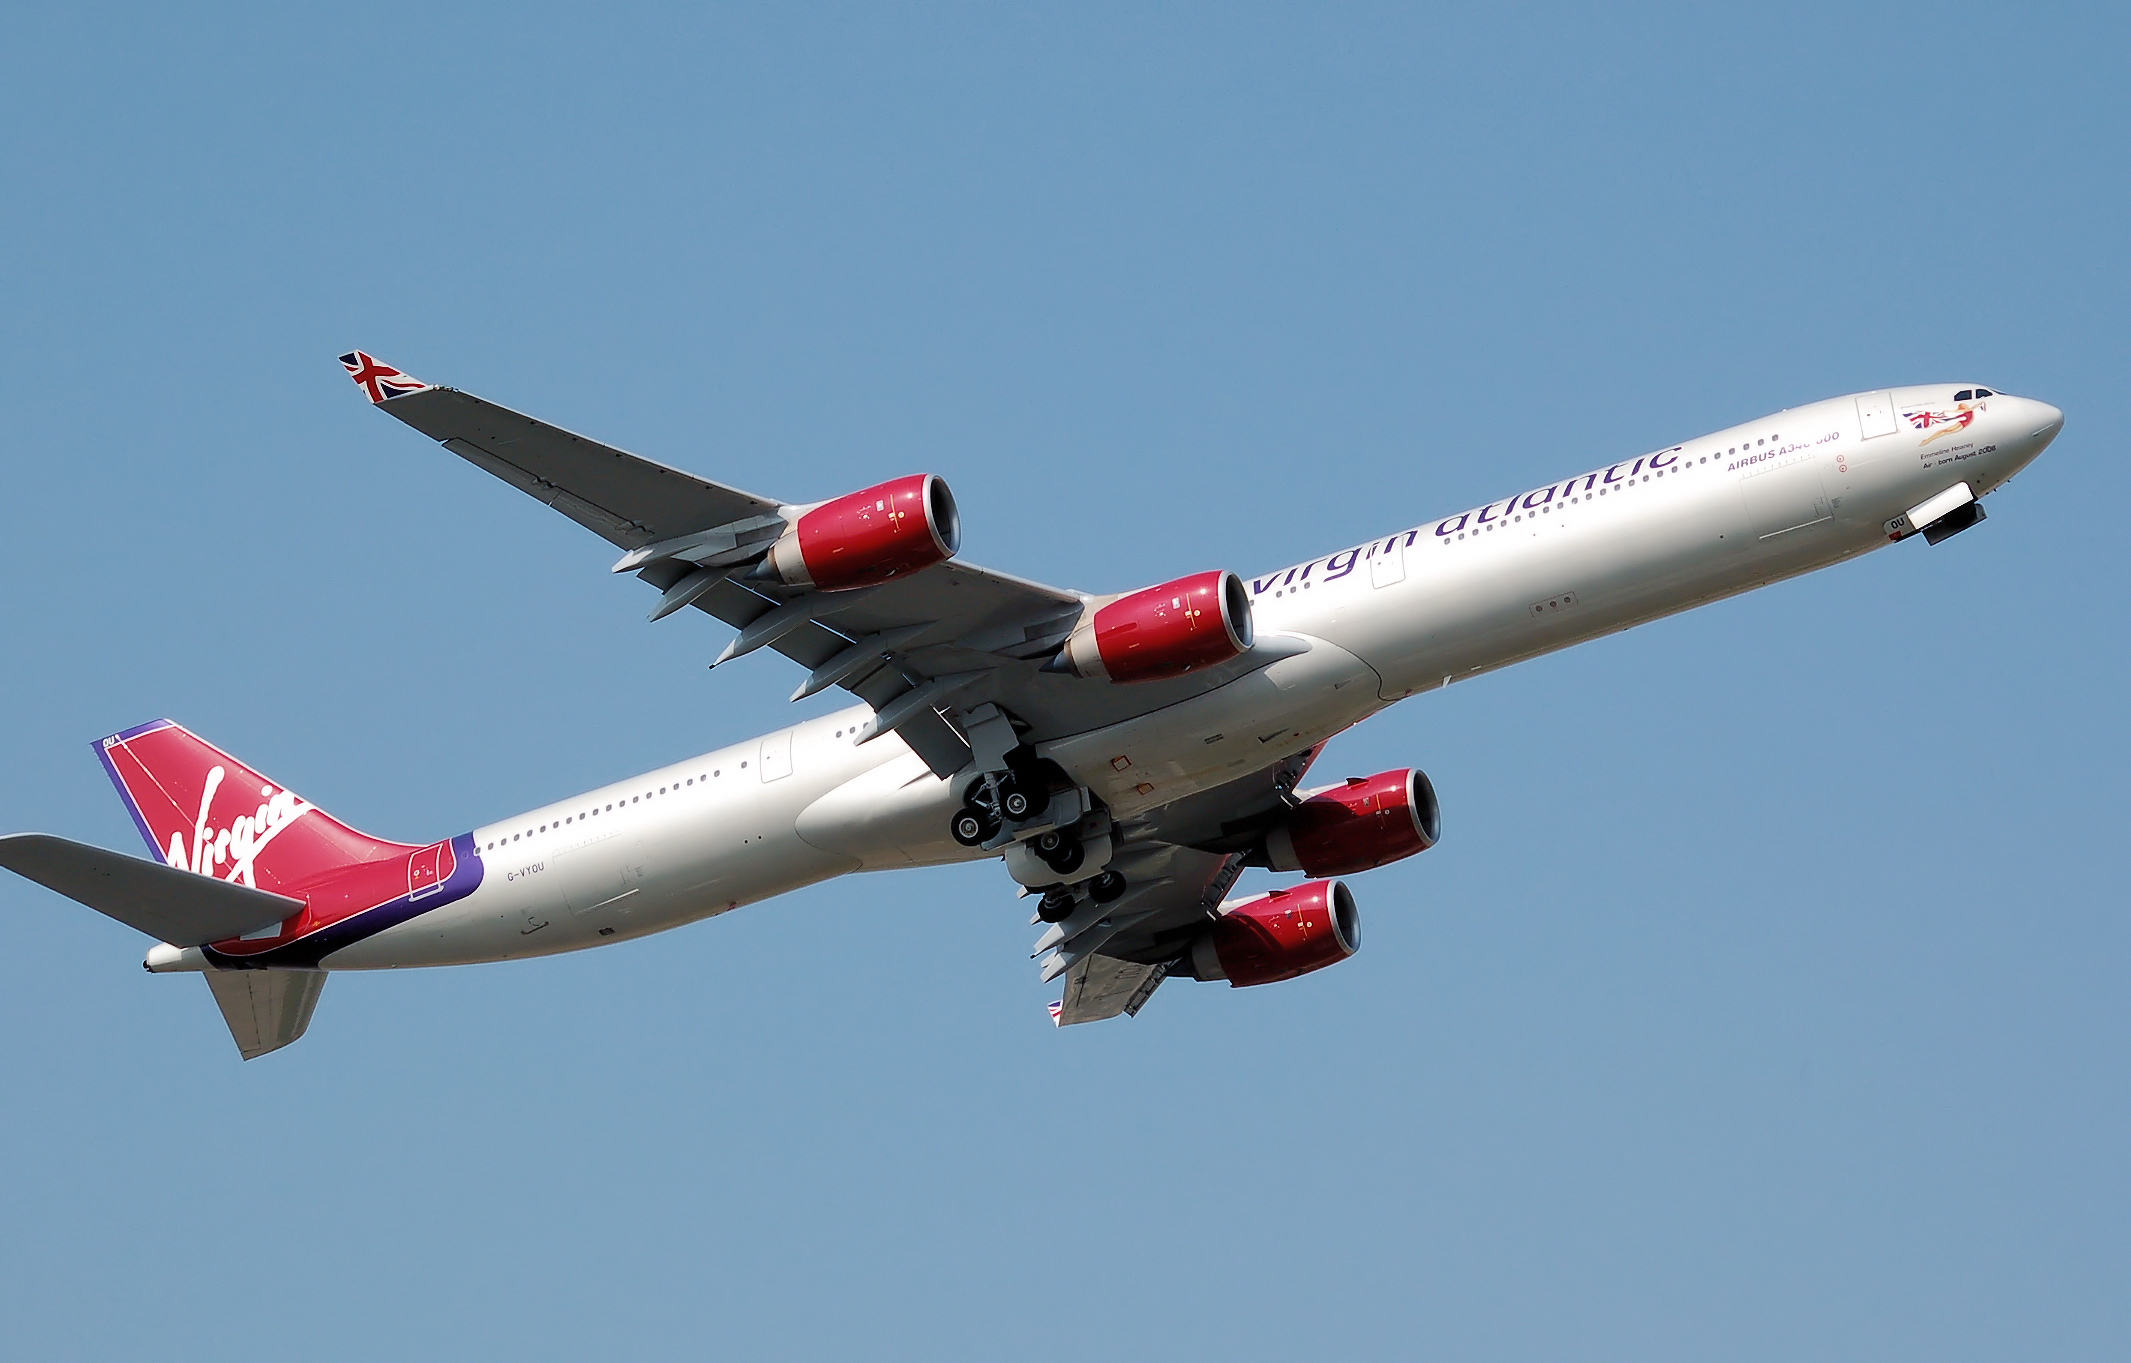 marketing of virgin atlantic The brandguide table above concludes the virgin atlantic swot analysis along with its marketing and brand parameters similar analysis has also been done for the competitors of the company belonging to the same category, sector or industry.